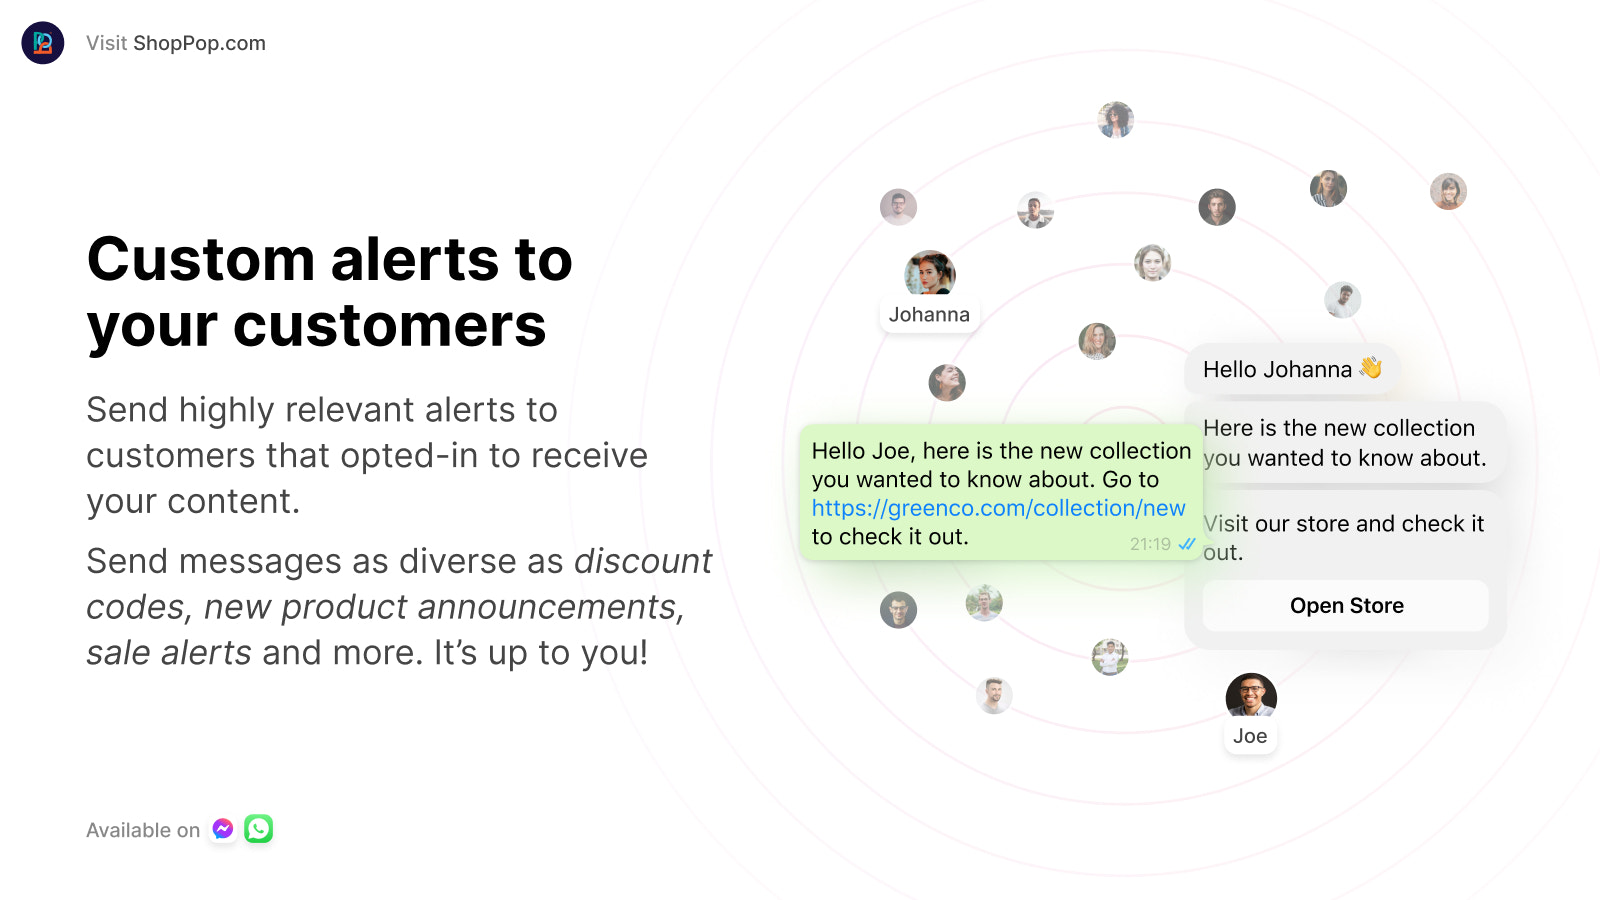 Send highly customizable alerts to your customers